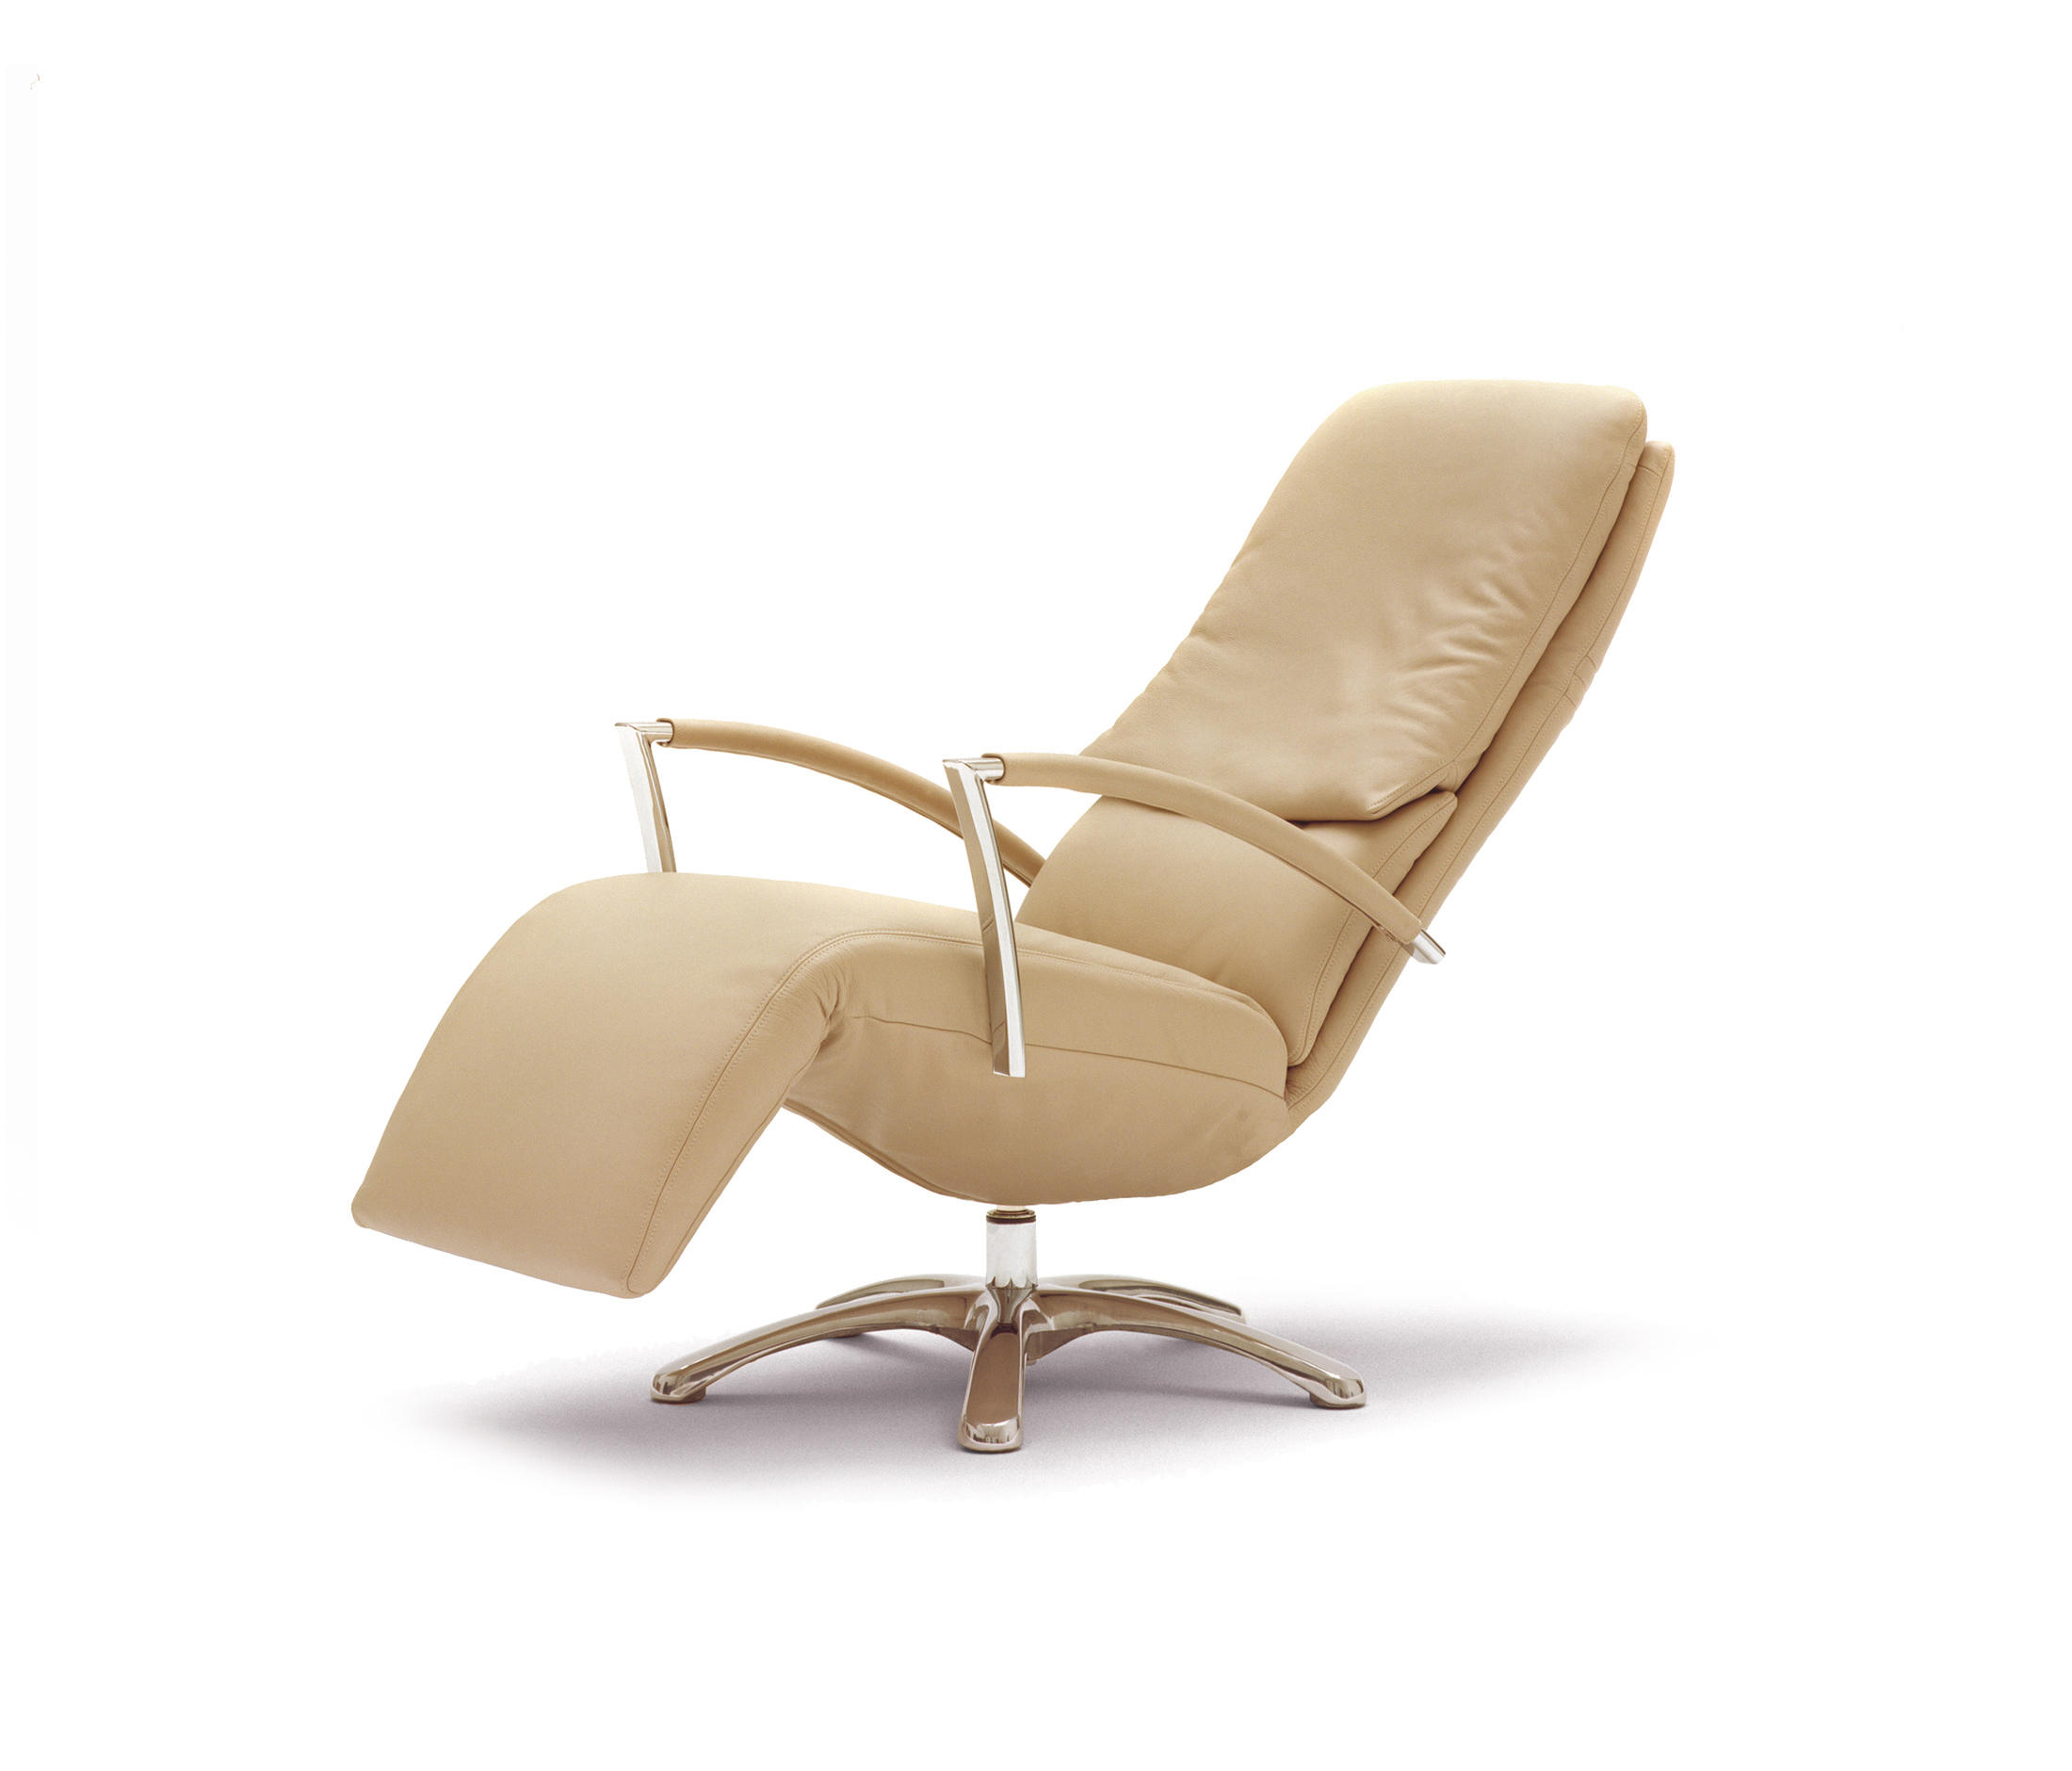 Dayton Recliners From Durlet Architonic # Muebles Requinables